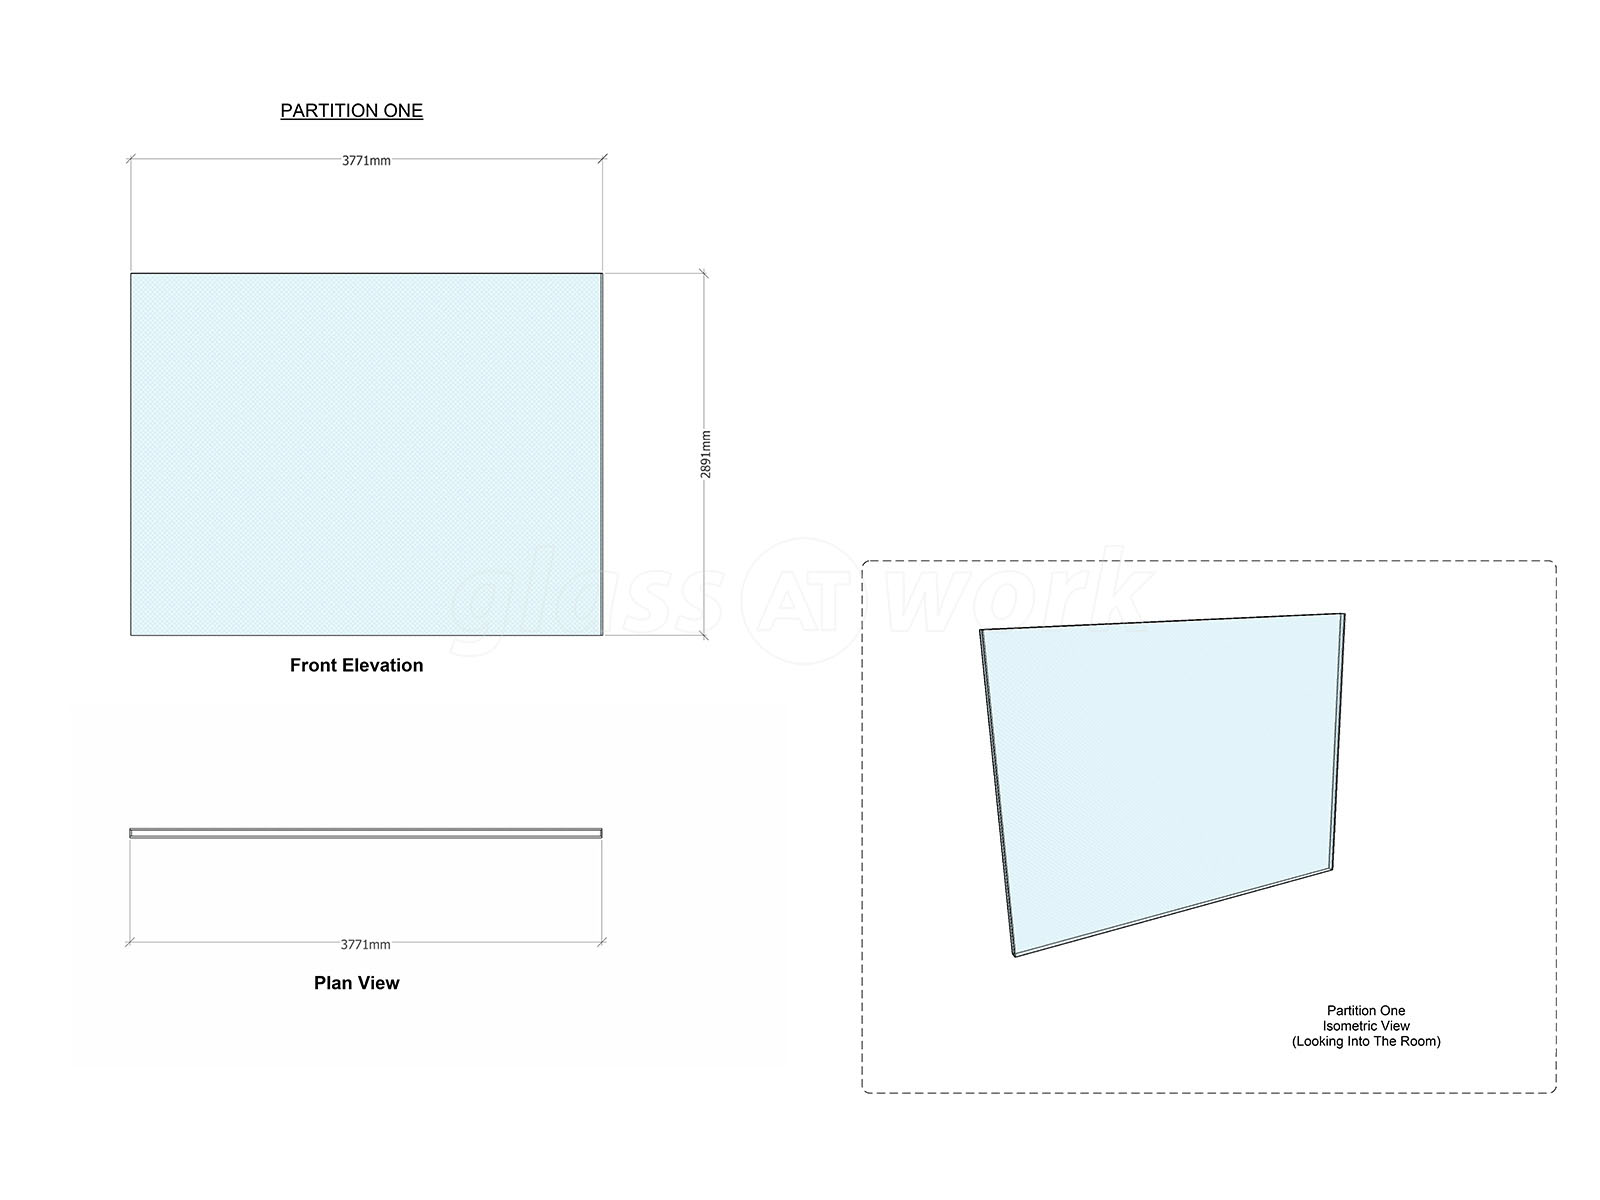 Glass Partitions At H22 Ltd Wandsworth London Double Glazed Glazing Diagram Office Wall